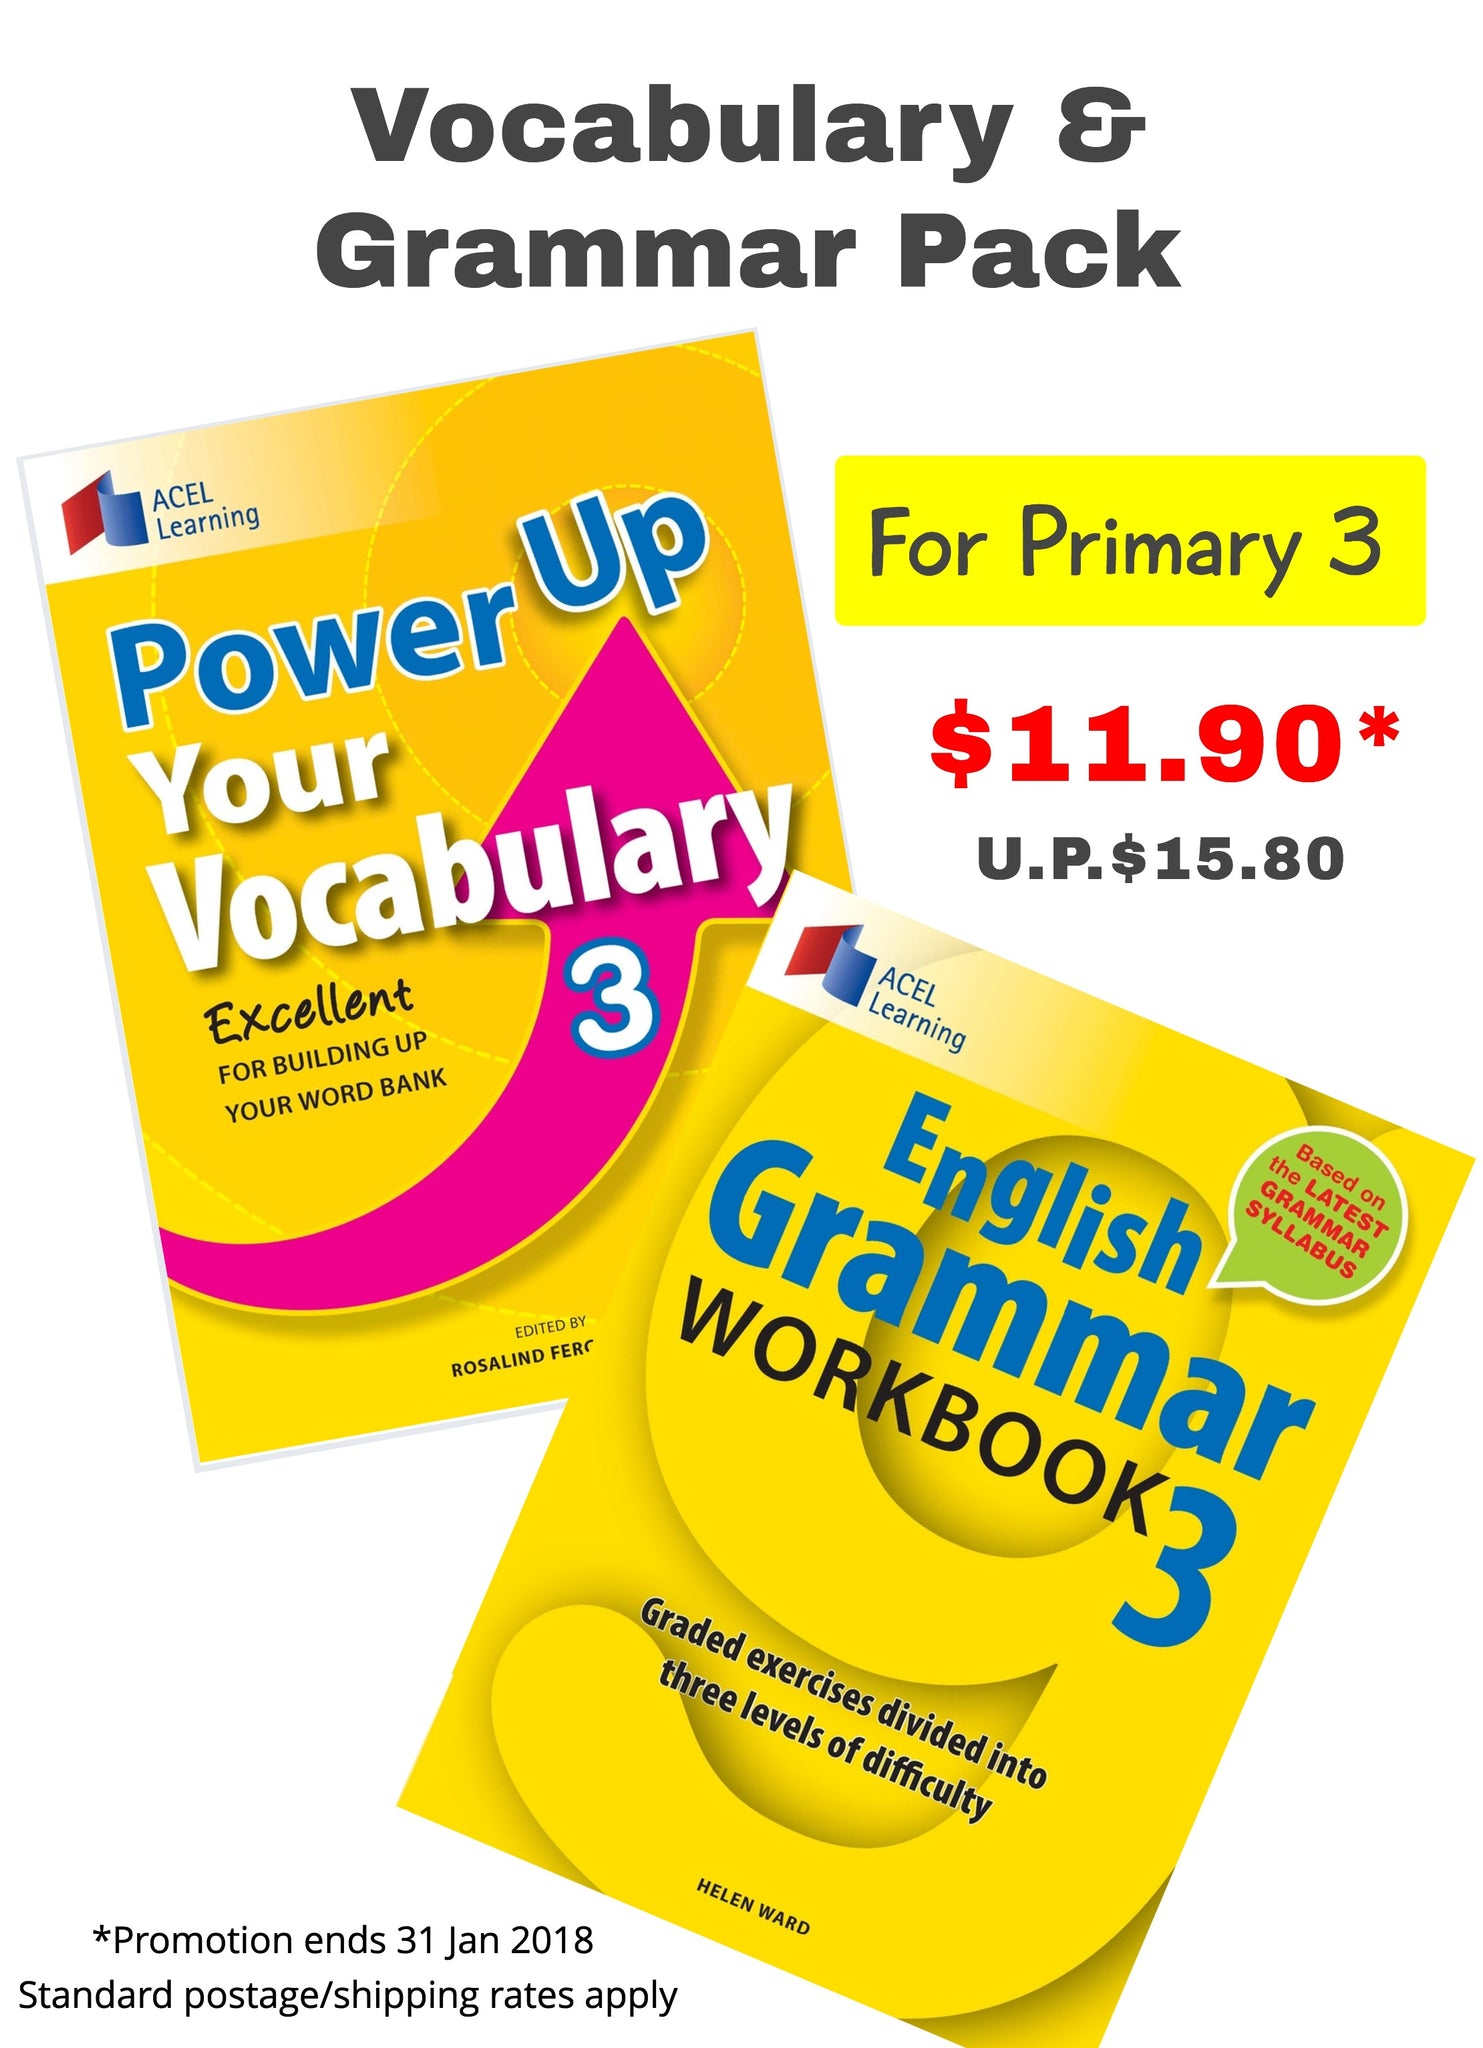 Vocabulary & Grammar Pack (for Primary 3) – Acel Learning (S) Pte Ltd